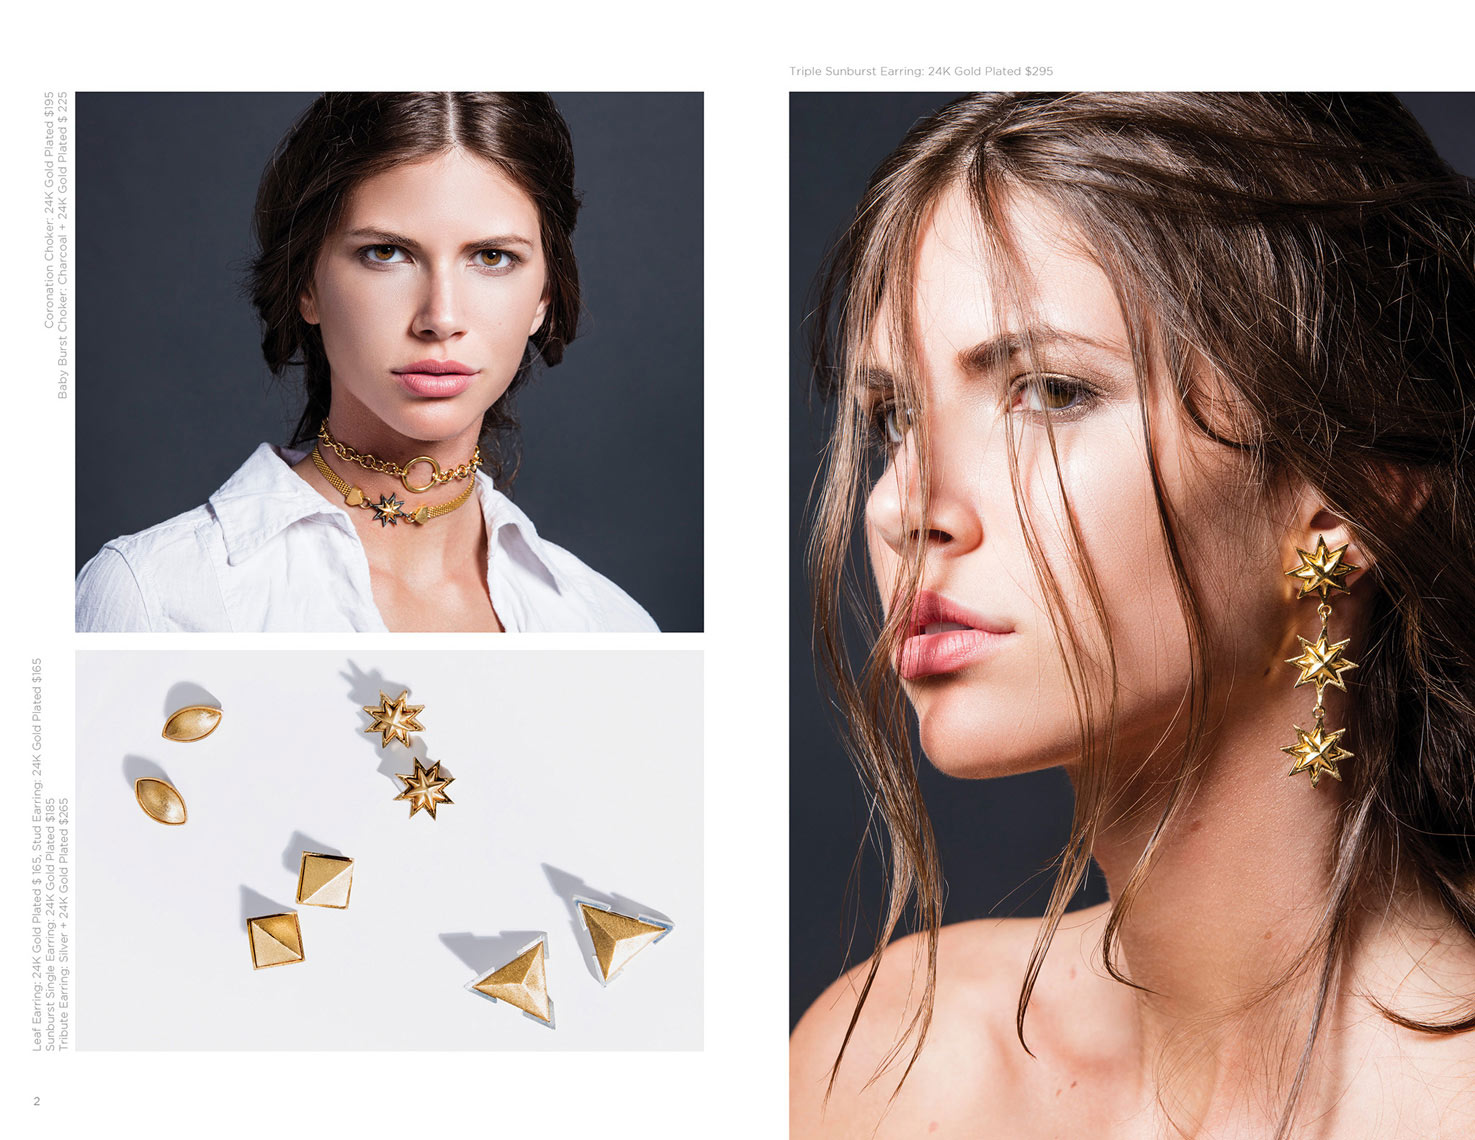 Stephanie Kantis, Lookbook, Jewelry Designer, Jewelry Photography, Beauty, Elite Model, Beauty, Beauty Photography, Portrait, Portrait Photography, Fashion Photography, Model, Studio Photography, Product, Product Photography, Advertising Photography, Ian Jacob, Ian Jacob Photography